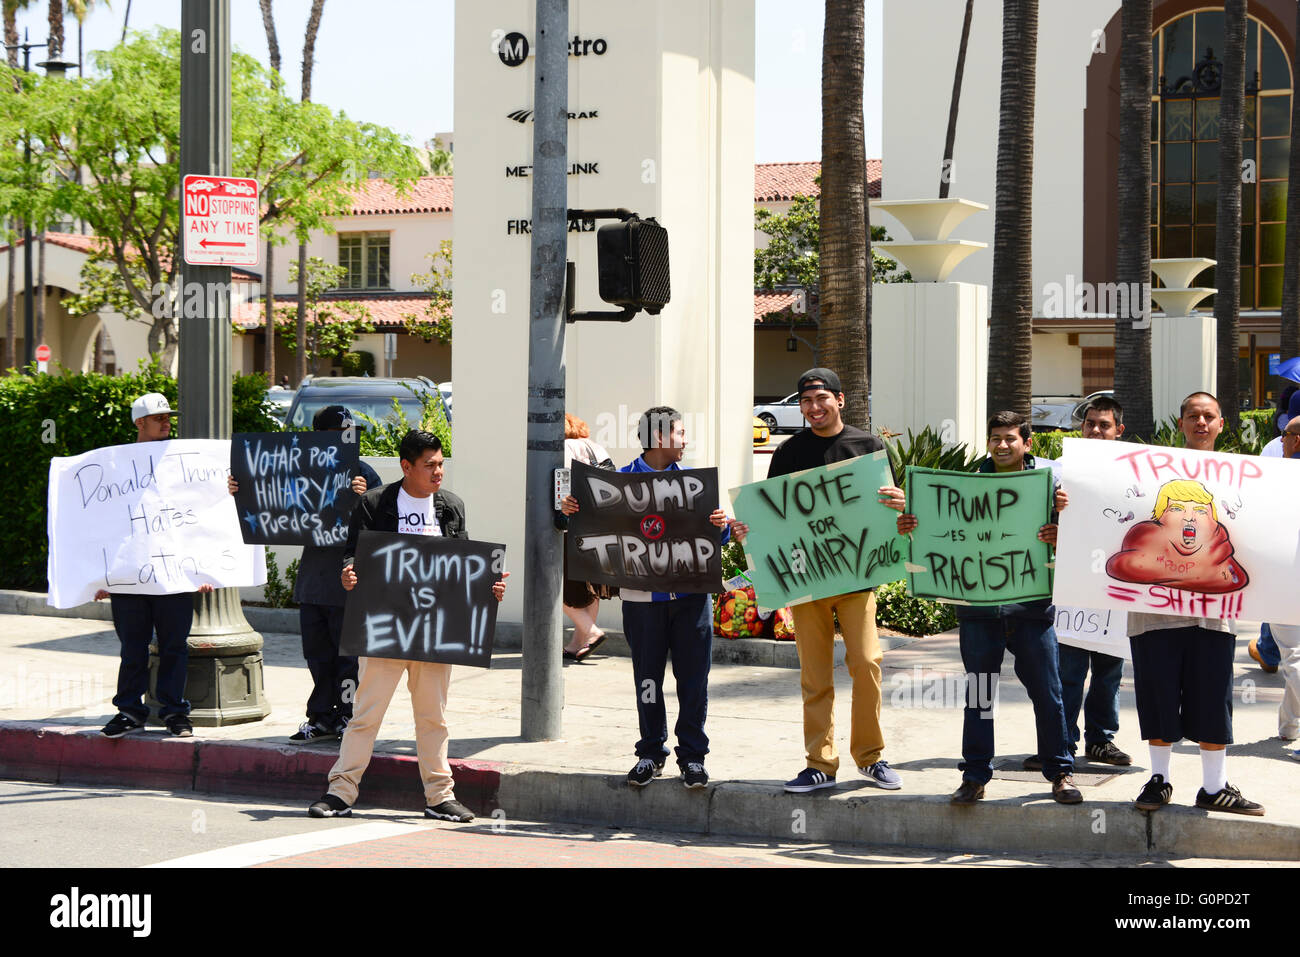 Hispanic anti-Trump demonstrators wave signs at traffic on street  in downtown Los Angeles Southern California USA - Stock Image